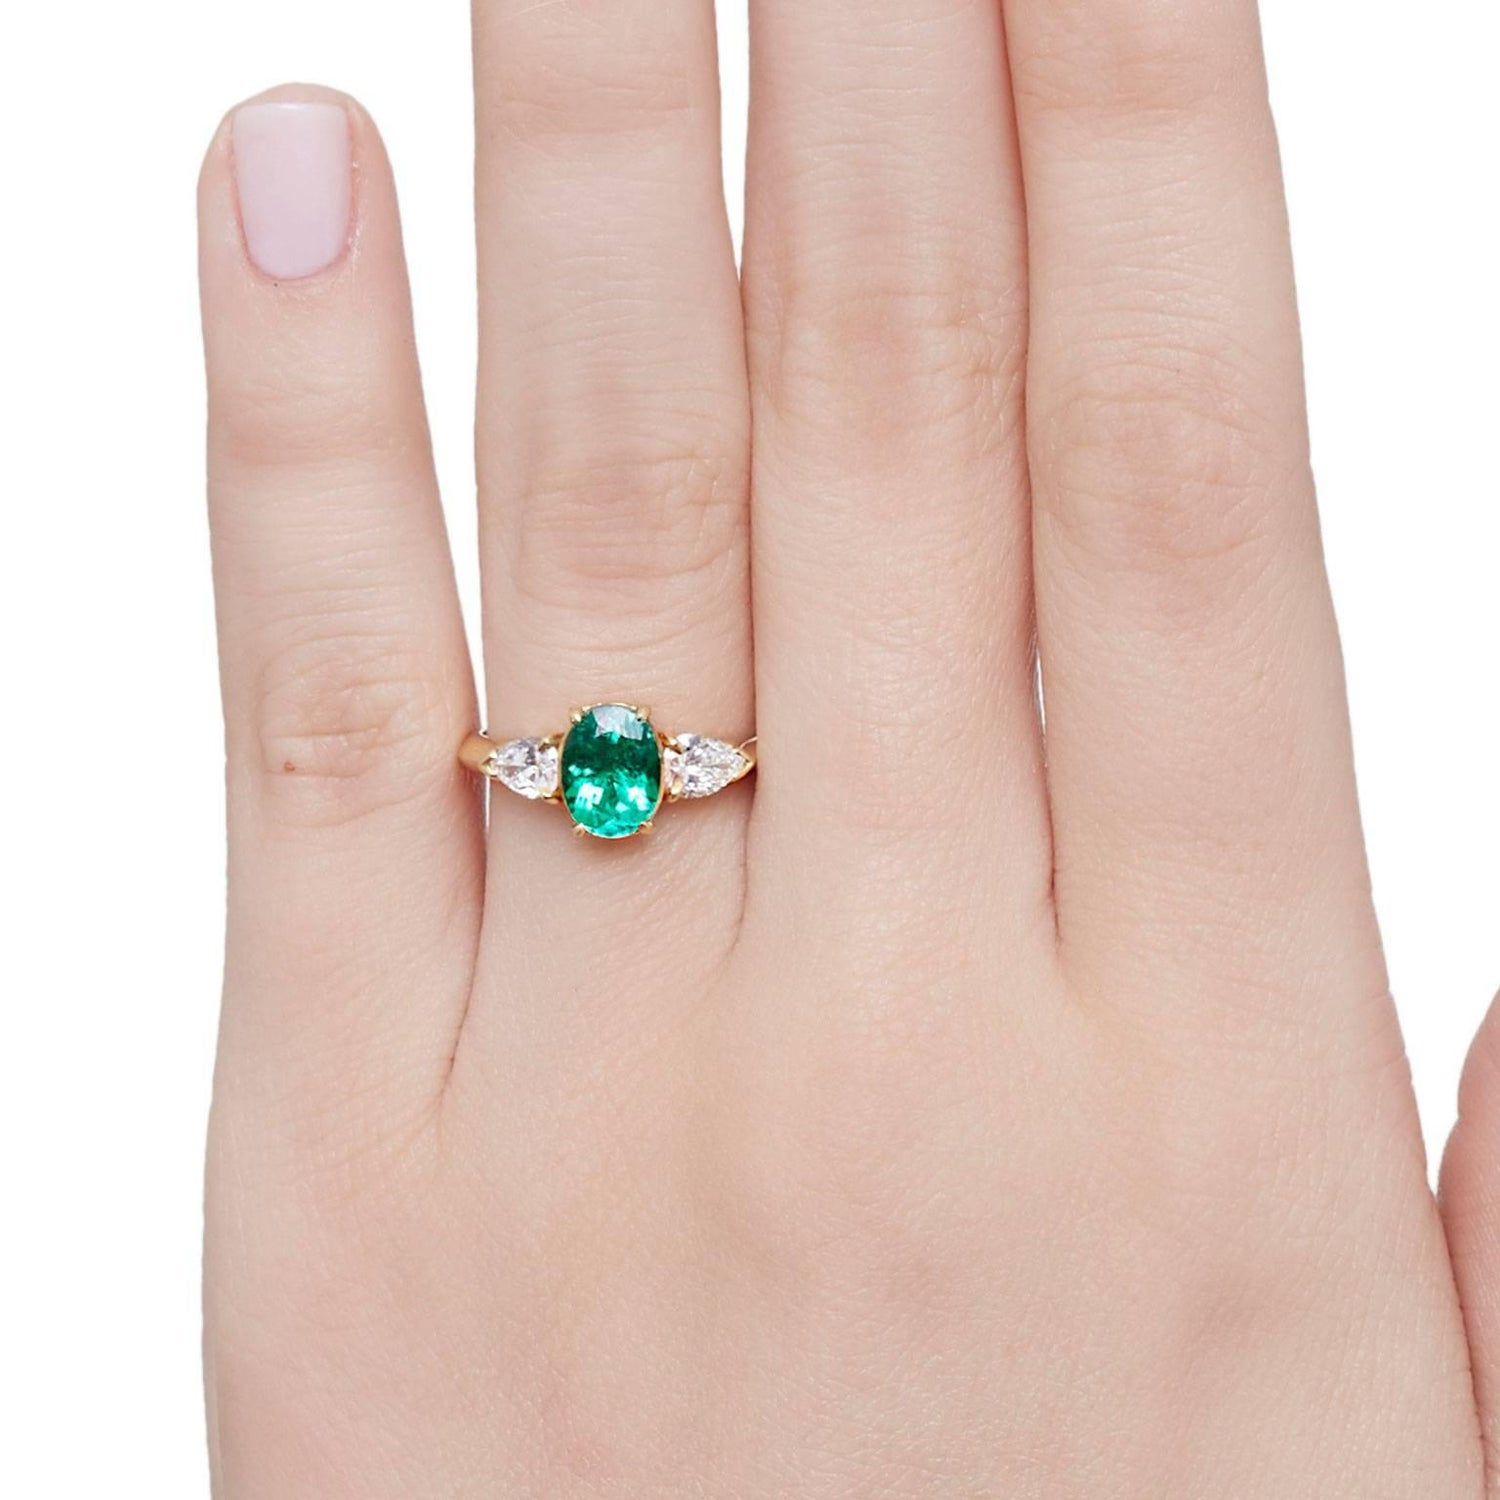 Cushla Whiting 1.1 Carat Certified Muzo Emerald \'Verde\' Ring with ...